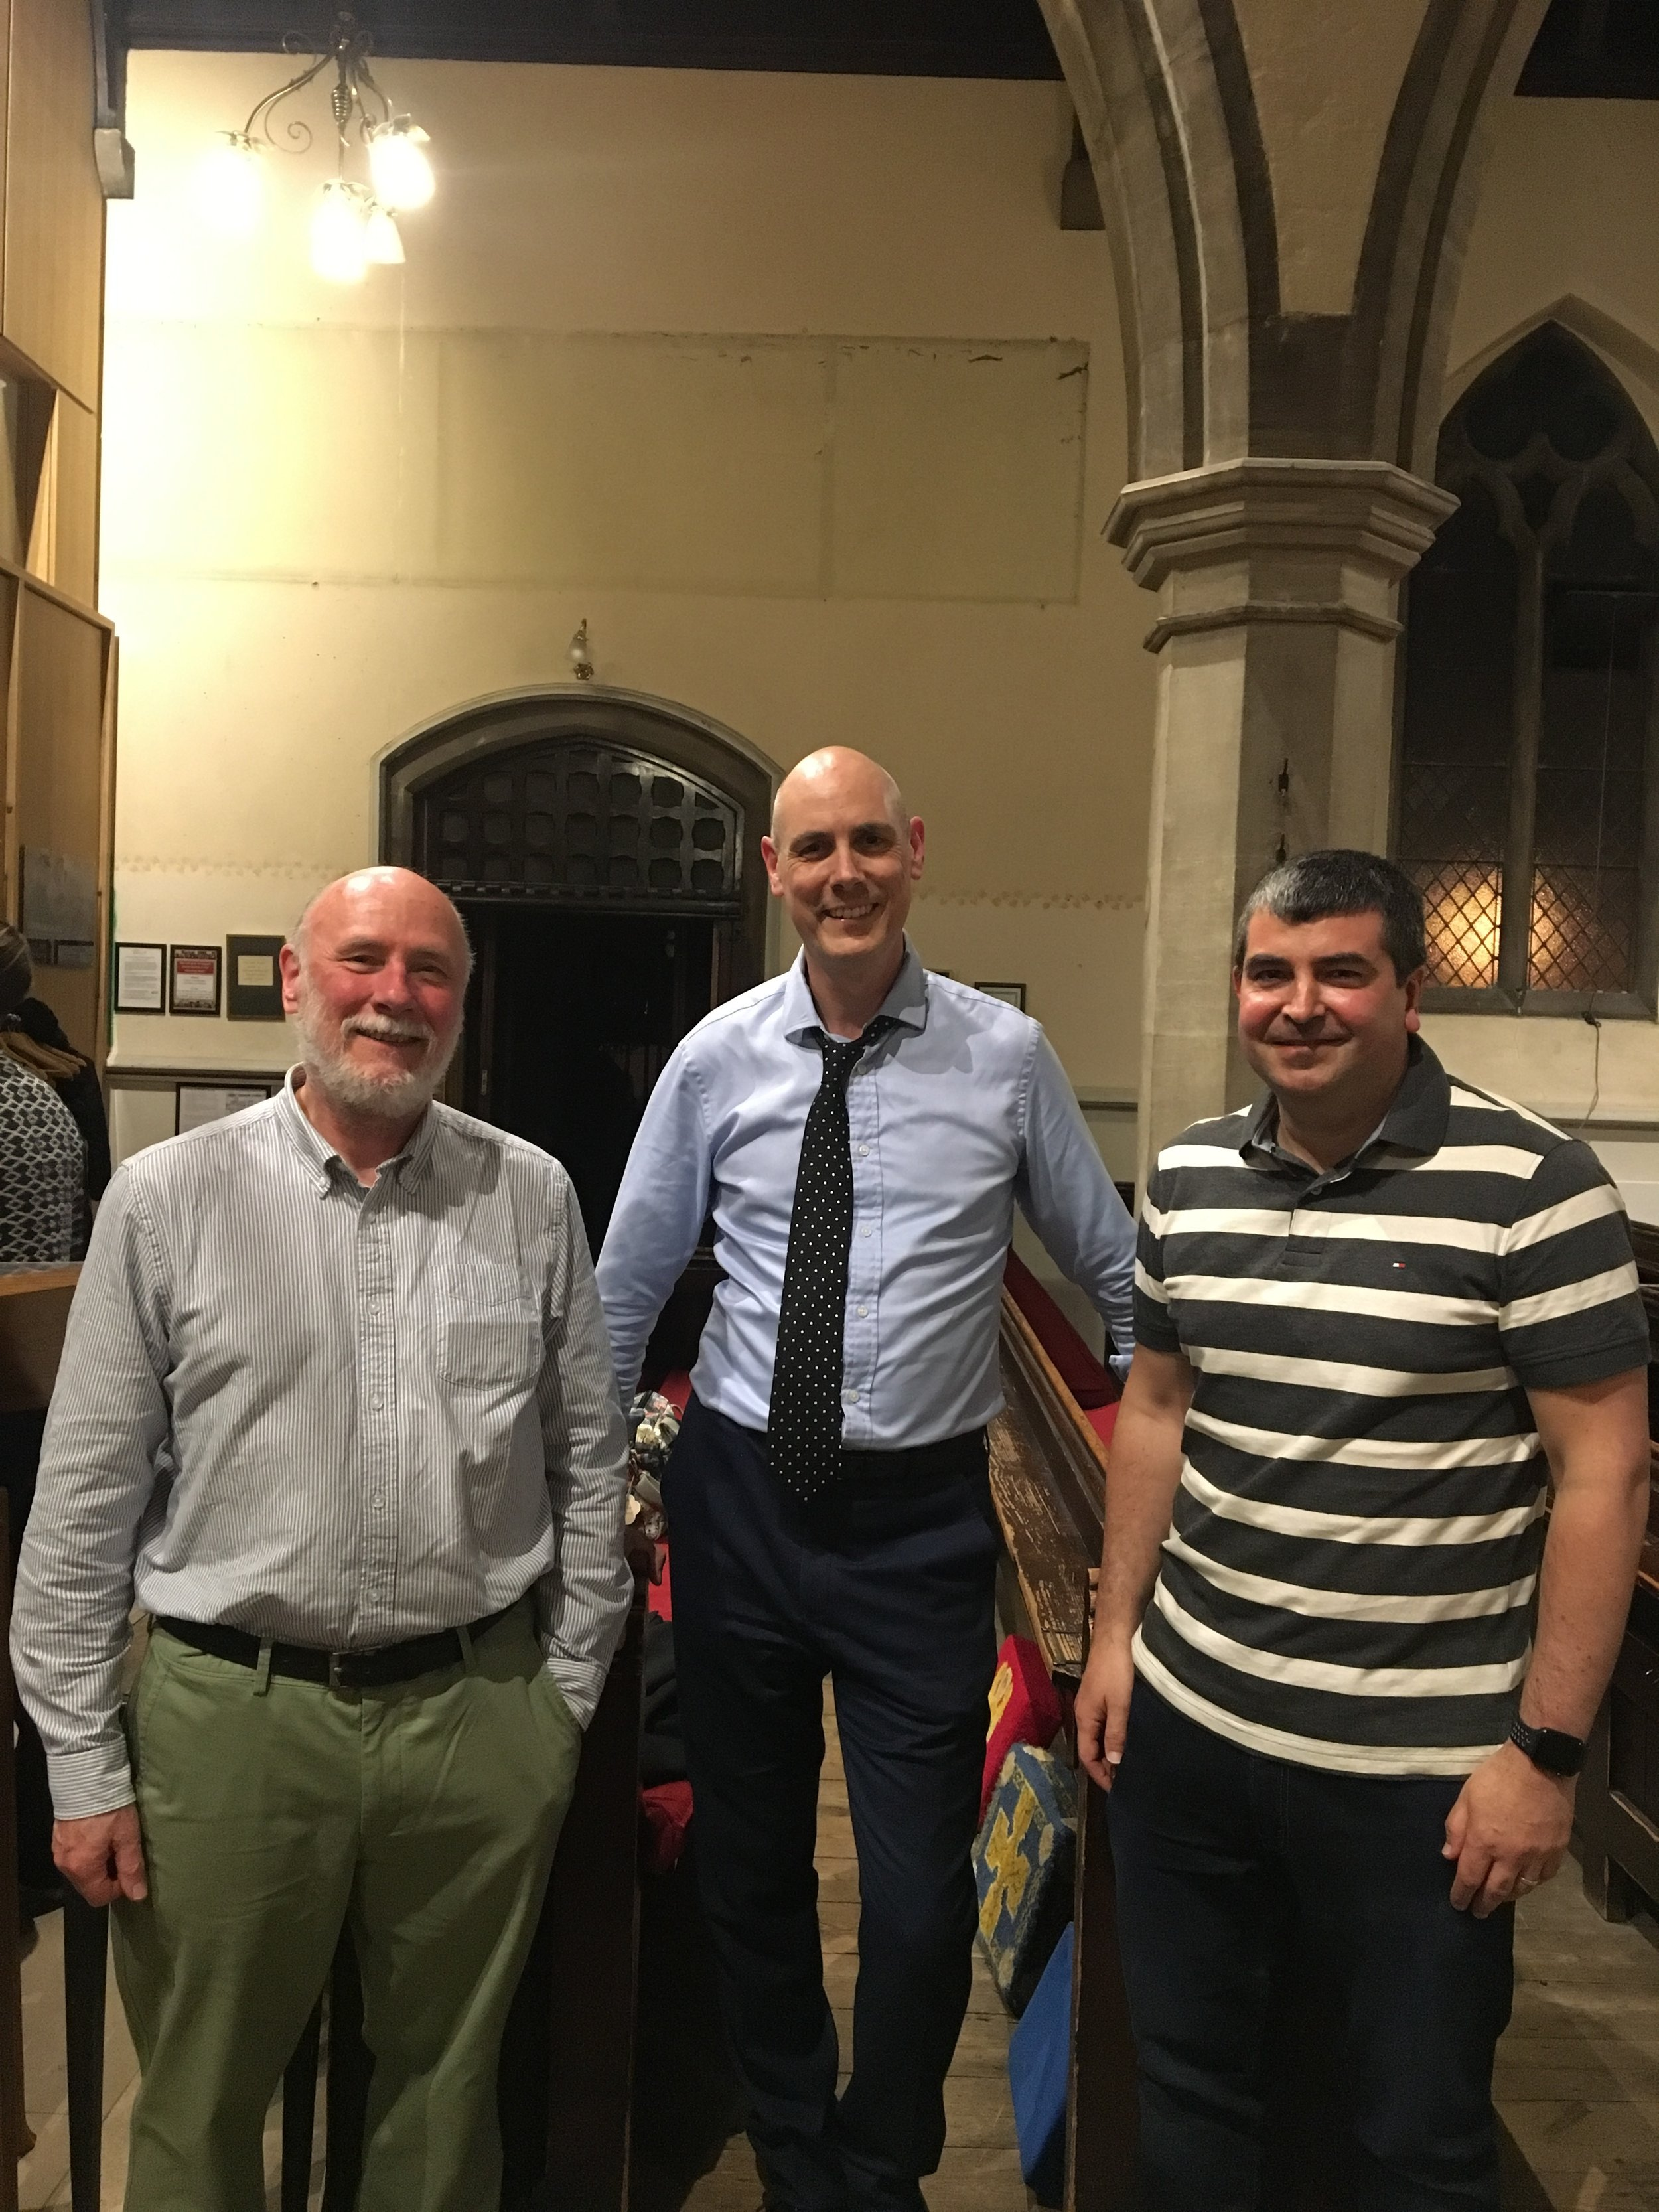 With (L) Dan Rootham, grandson of Cyril Rootham, and (R) David Walthew, great-grandson of Richard Walthew